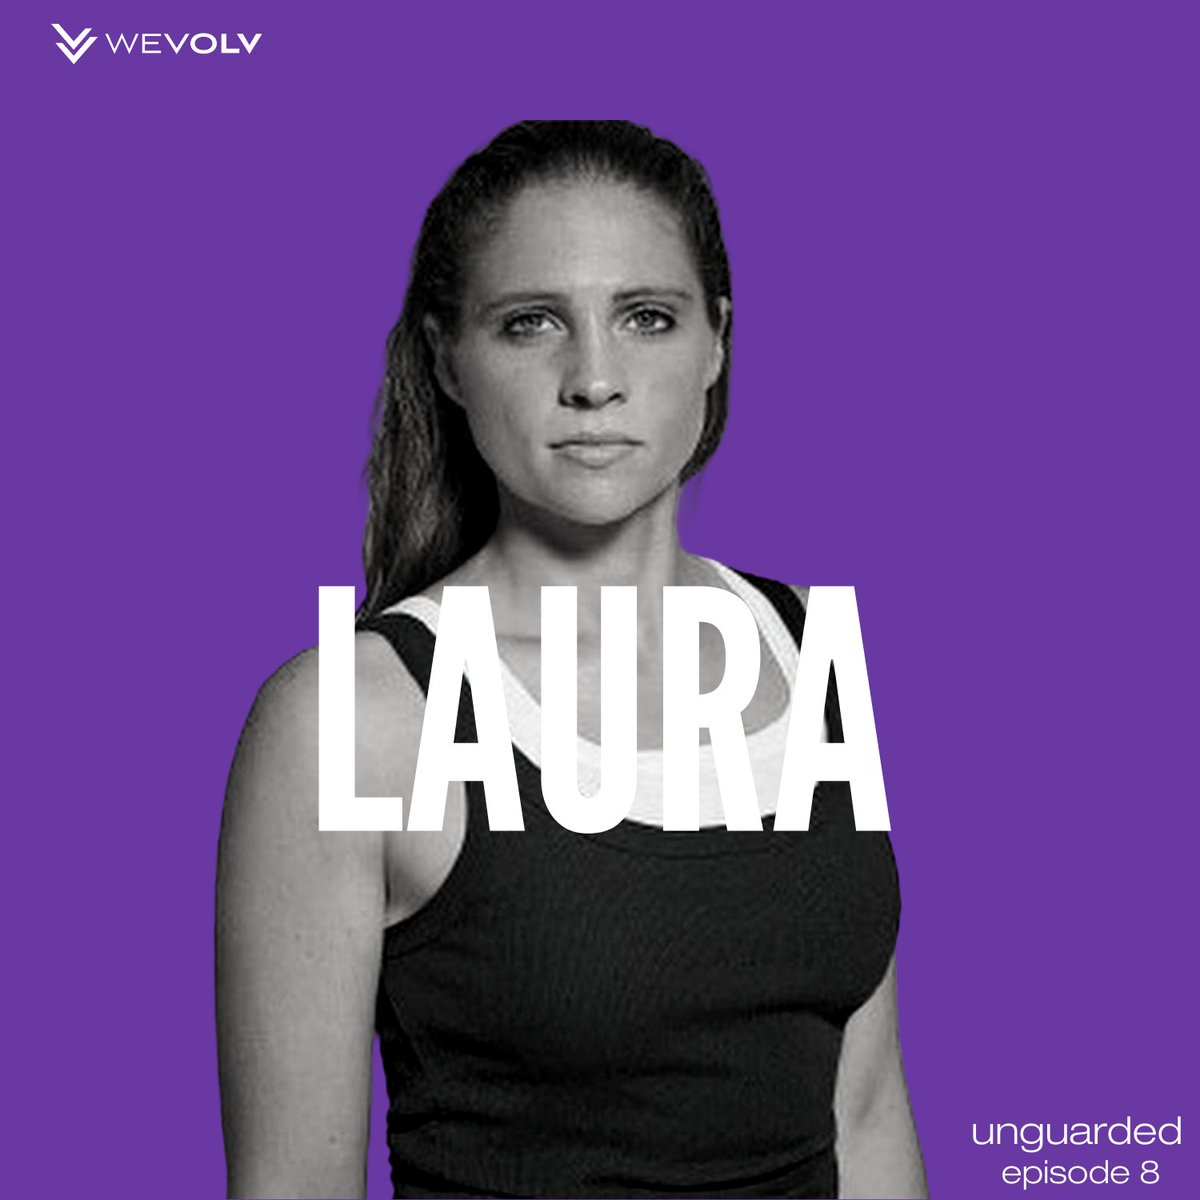 Latest ep of Unguarded podcast w/@iamjoridavis features #LauraGiuliani, goal keeper of @JuventusFCWomen and the Italian National Team. She talks about the importance of the support she has received from her boyfriend throughout her career.  https://anchor.fm/unguarded/episodes/LAURA-GIULIANI-Our-common-point-has-always-been-football--our-whole-life-runs-around-it-ef87oi/a-a2gth3k…pic.twitter.com/m6eQtS2jtU